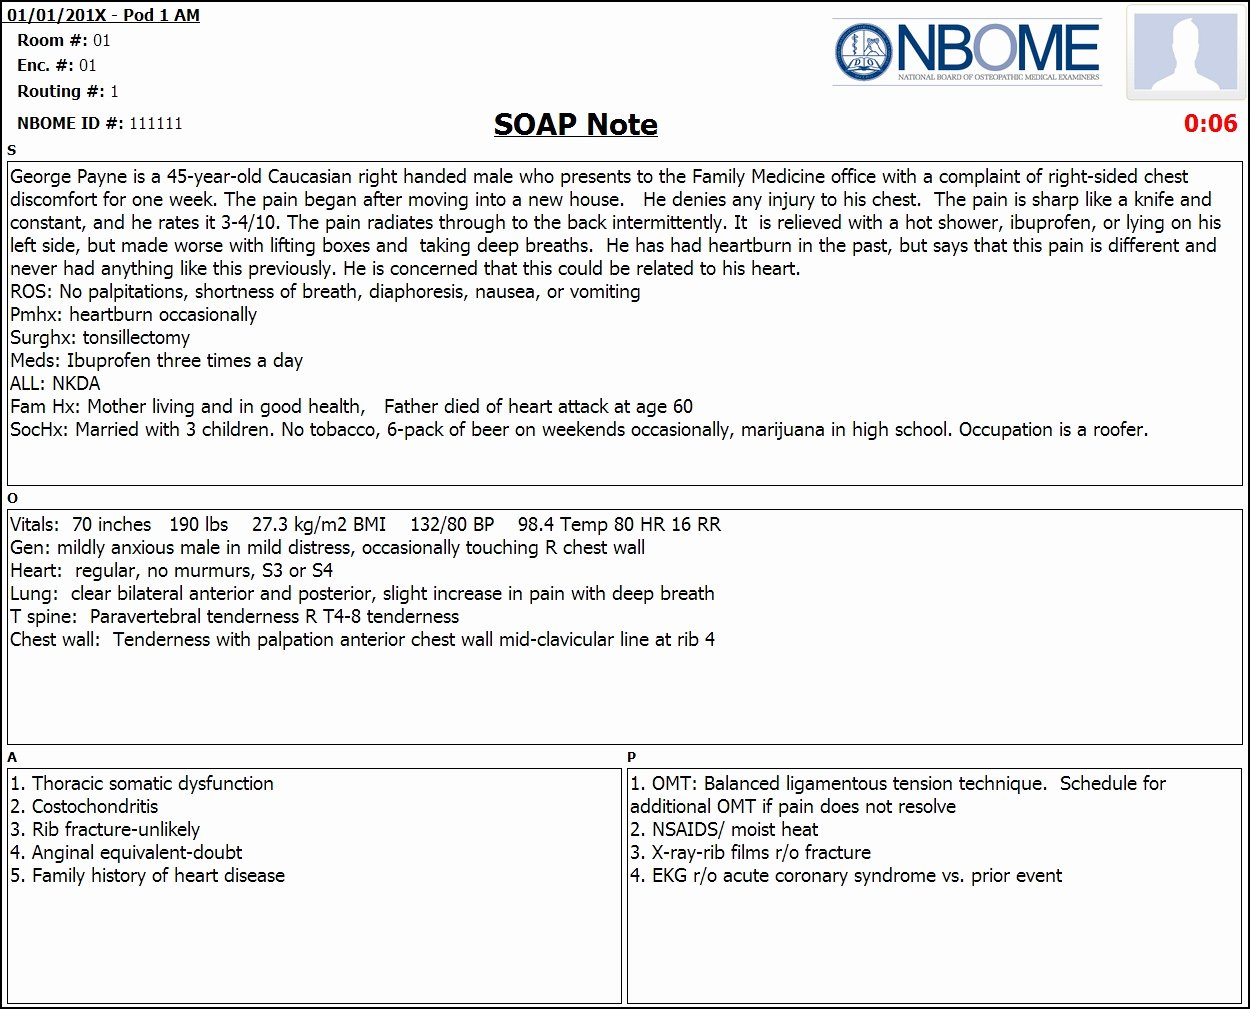 Nursing soap Note Template Unique Pleted Esoap Note Sample — Nbome